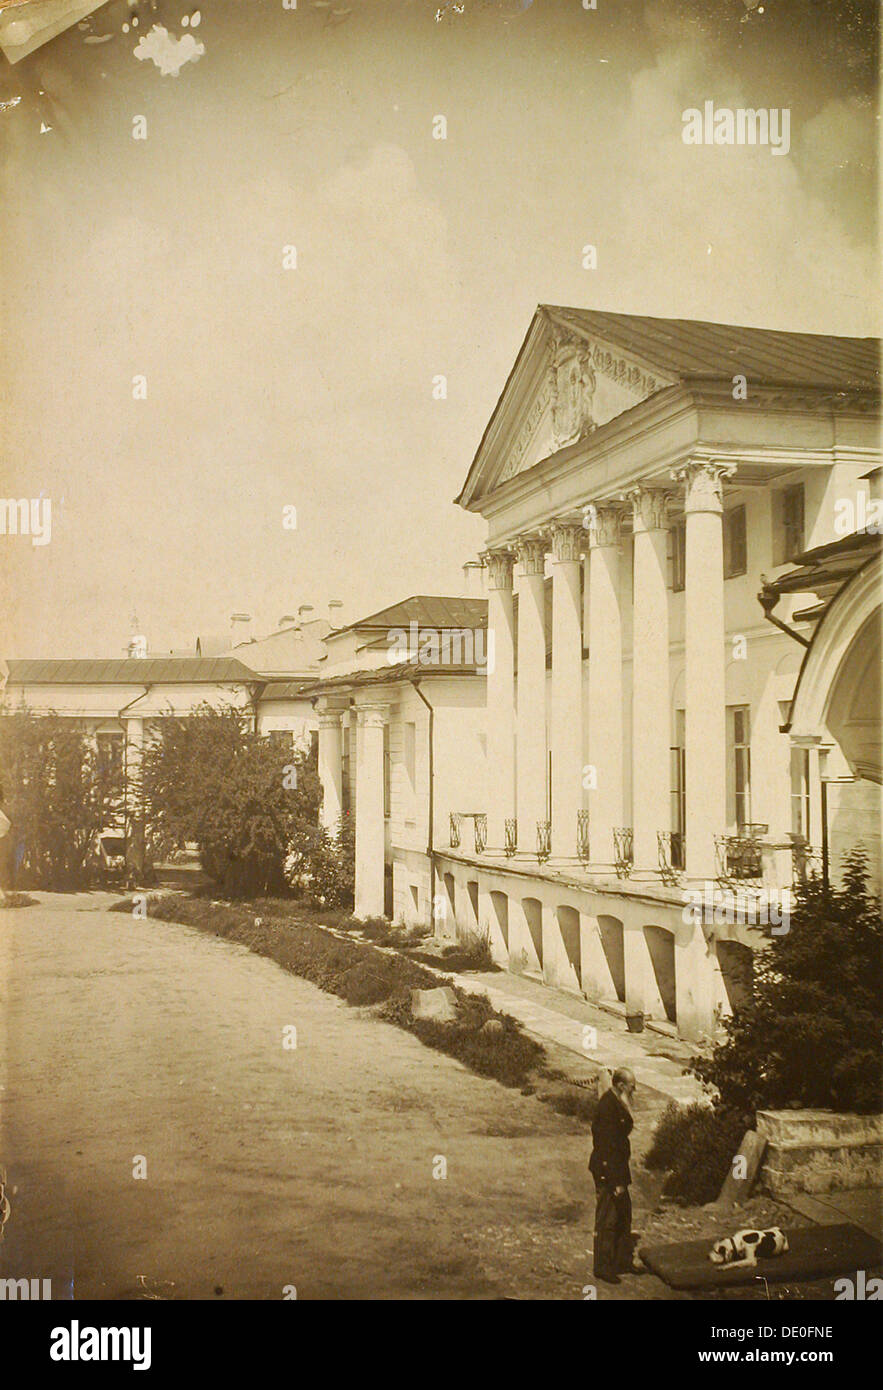 The Palace of Arts, Moscow, Russia, 1920s. - Stock Image